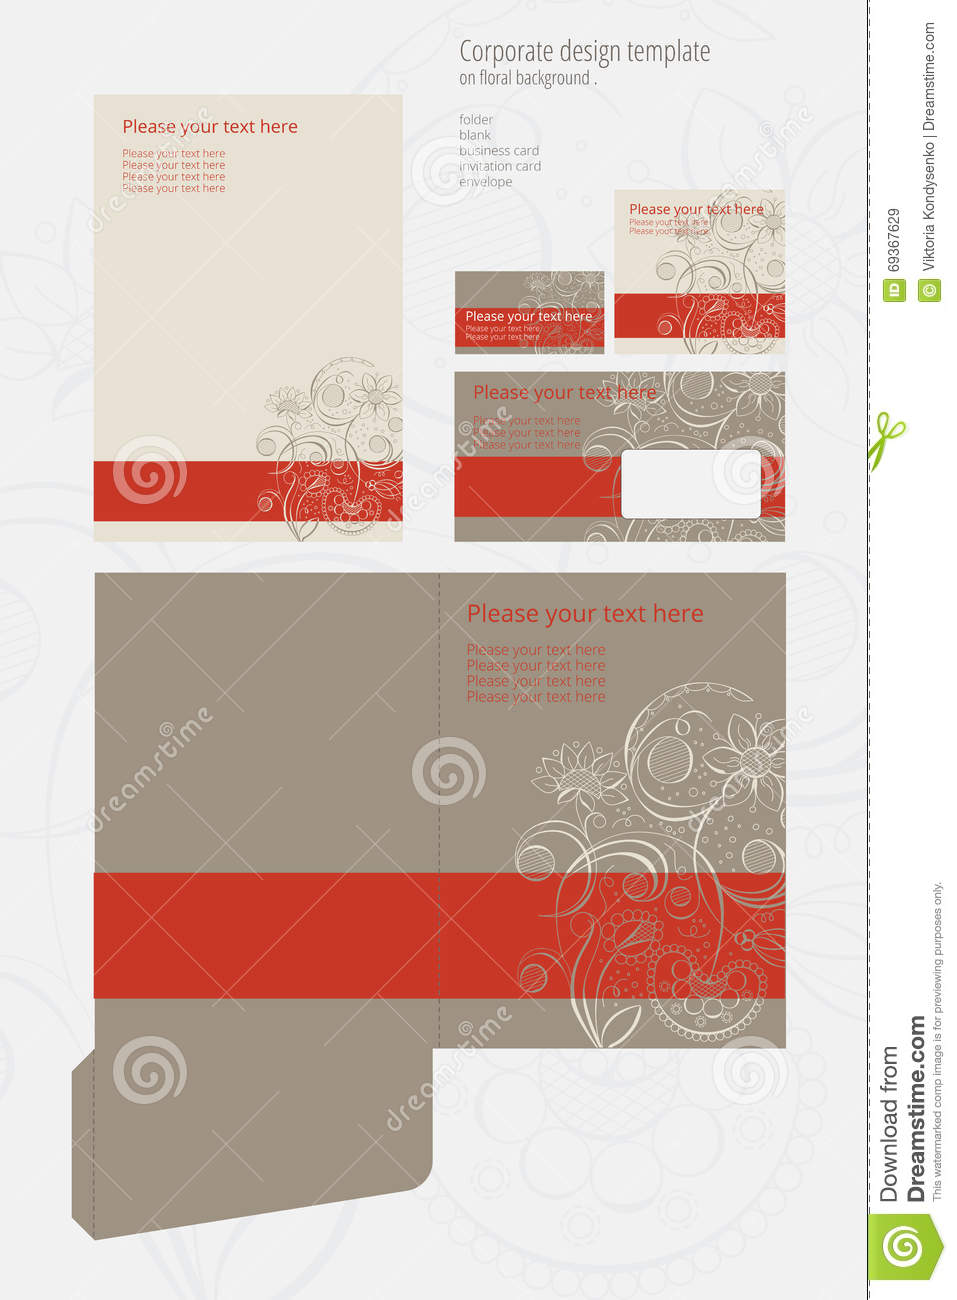 Vector Corporate Design Template On Floral Background Stock